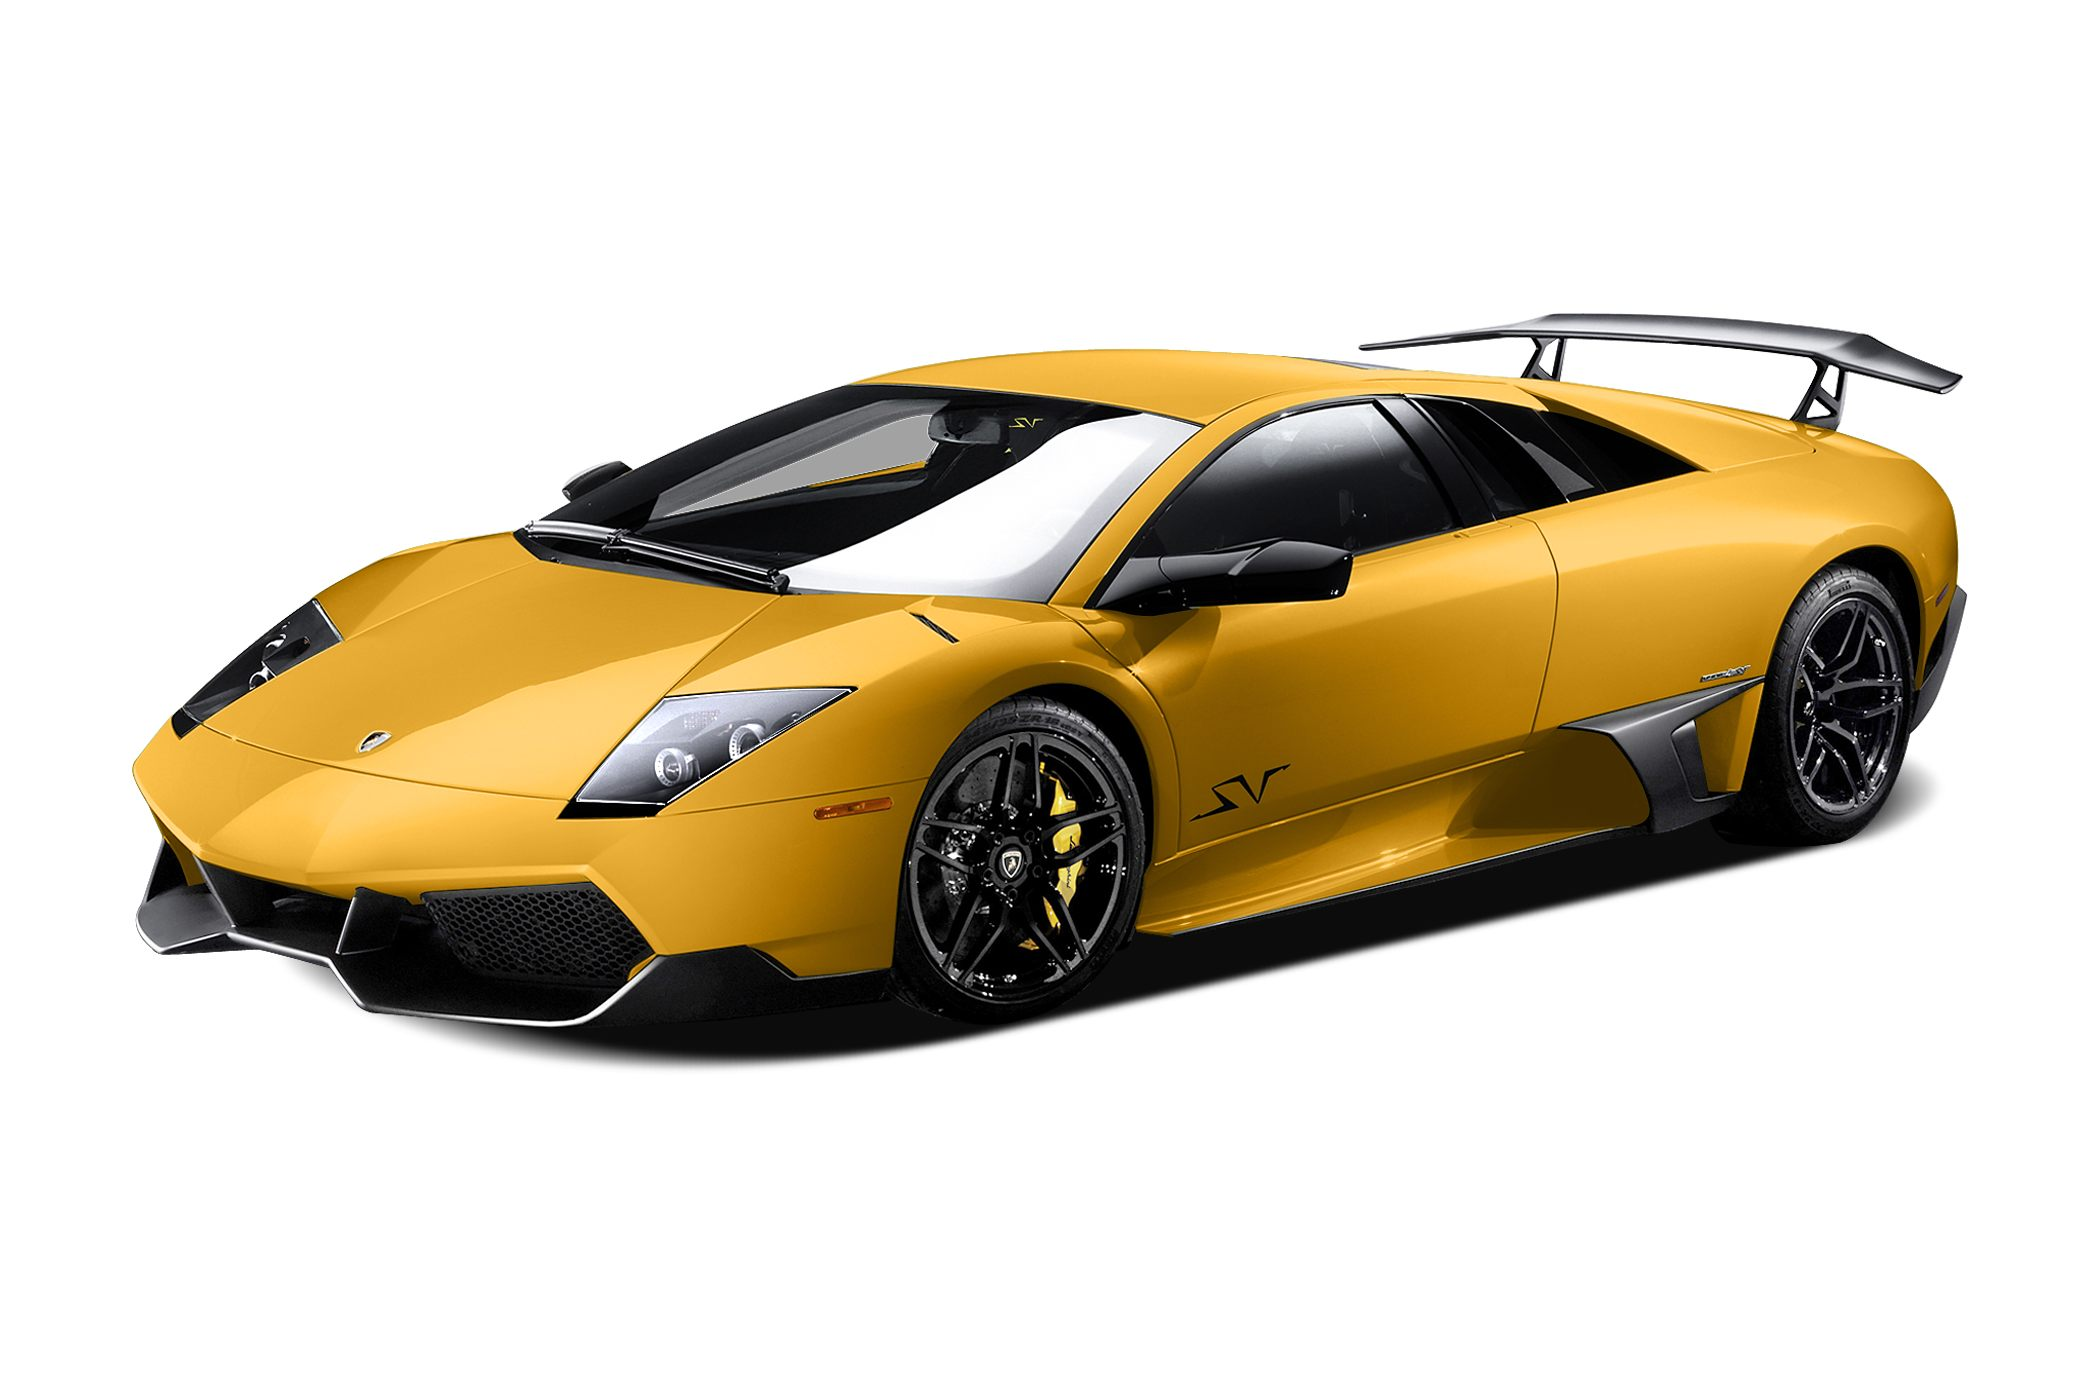 2010 Lamborghini Murcielago Lp670 4 Sv 2dr Coupe For Sale